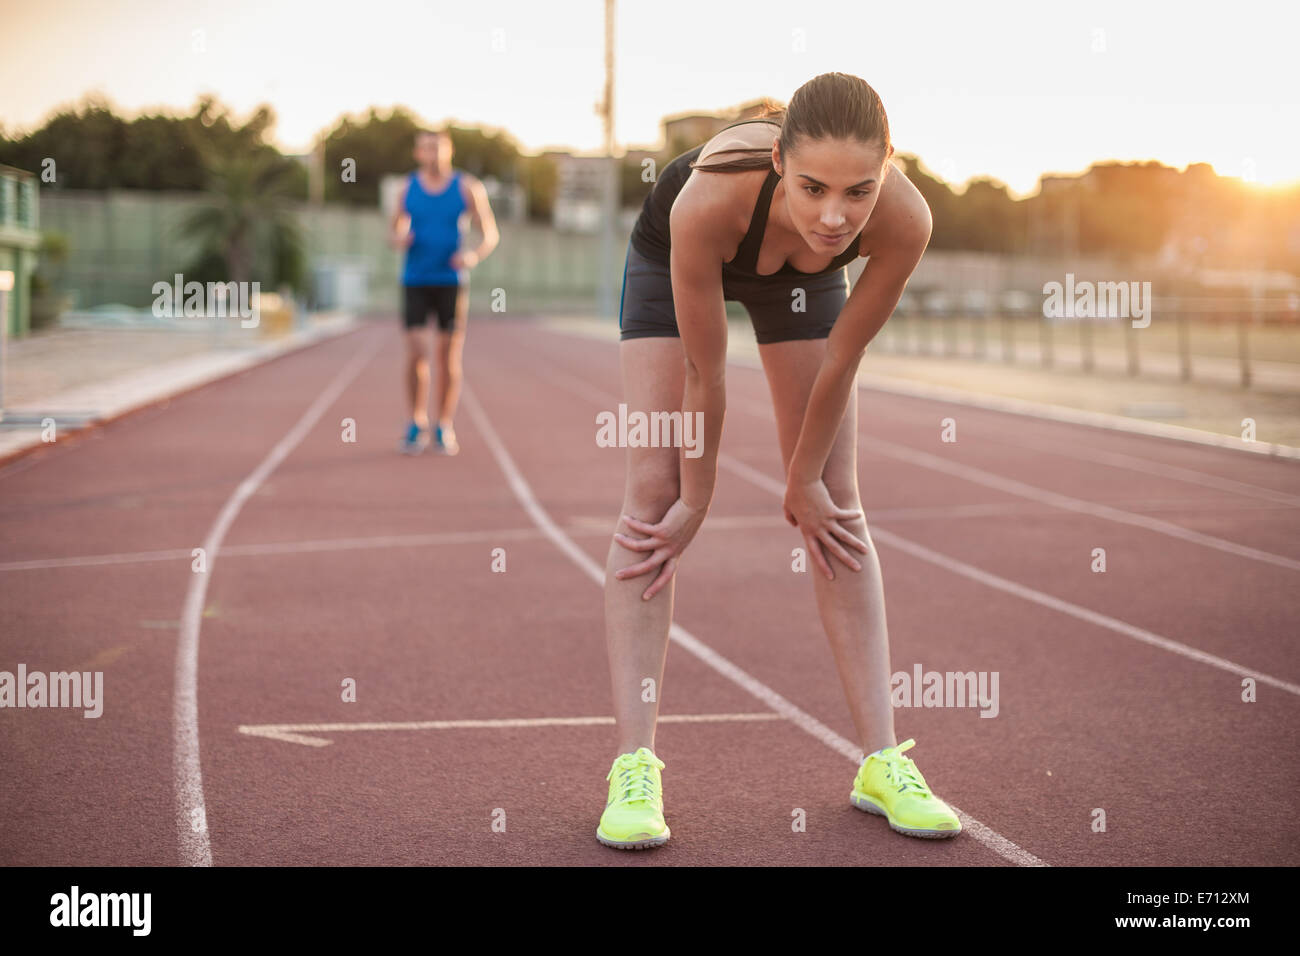 Woman leaning forward on racing track - Stock Image